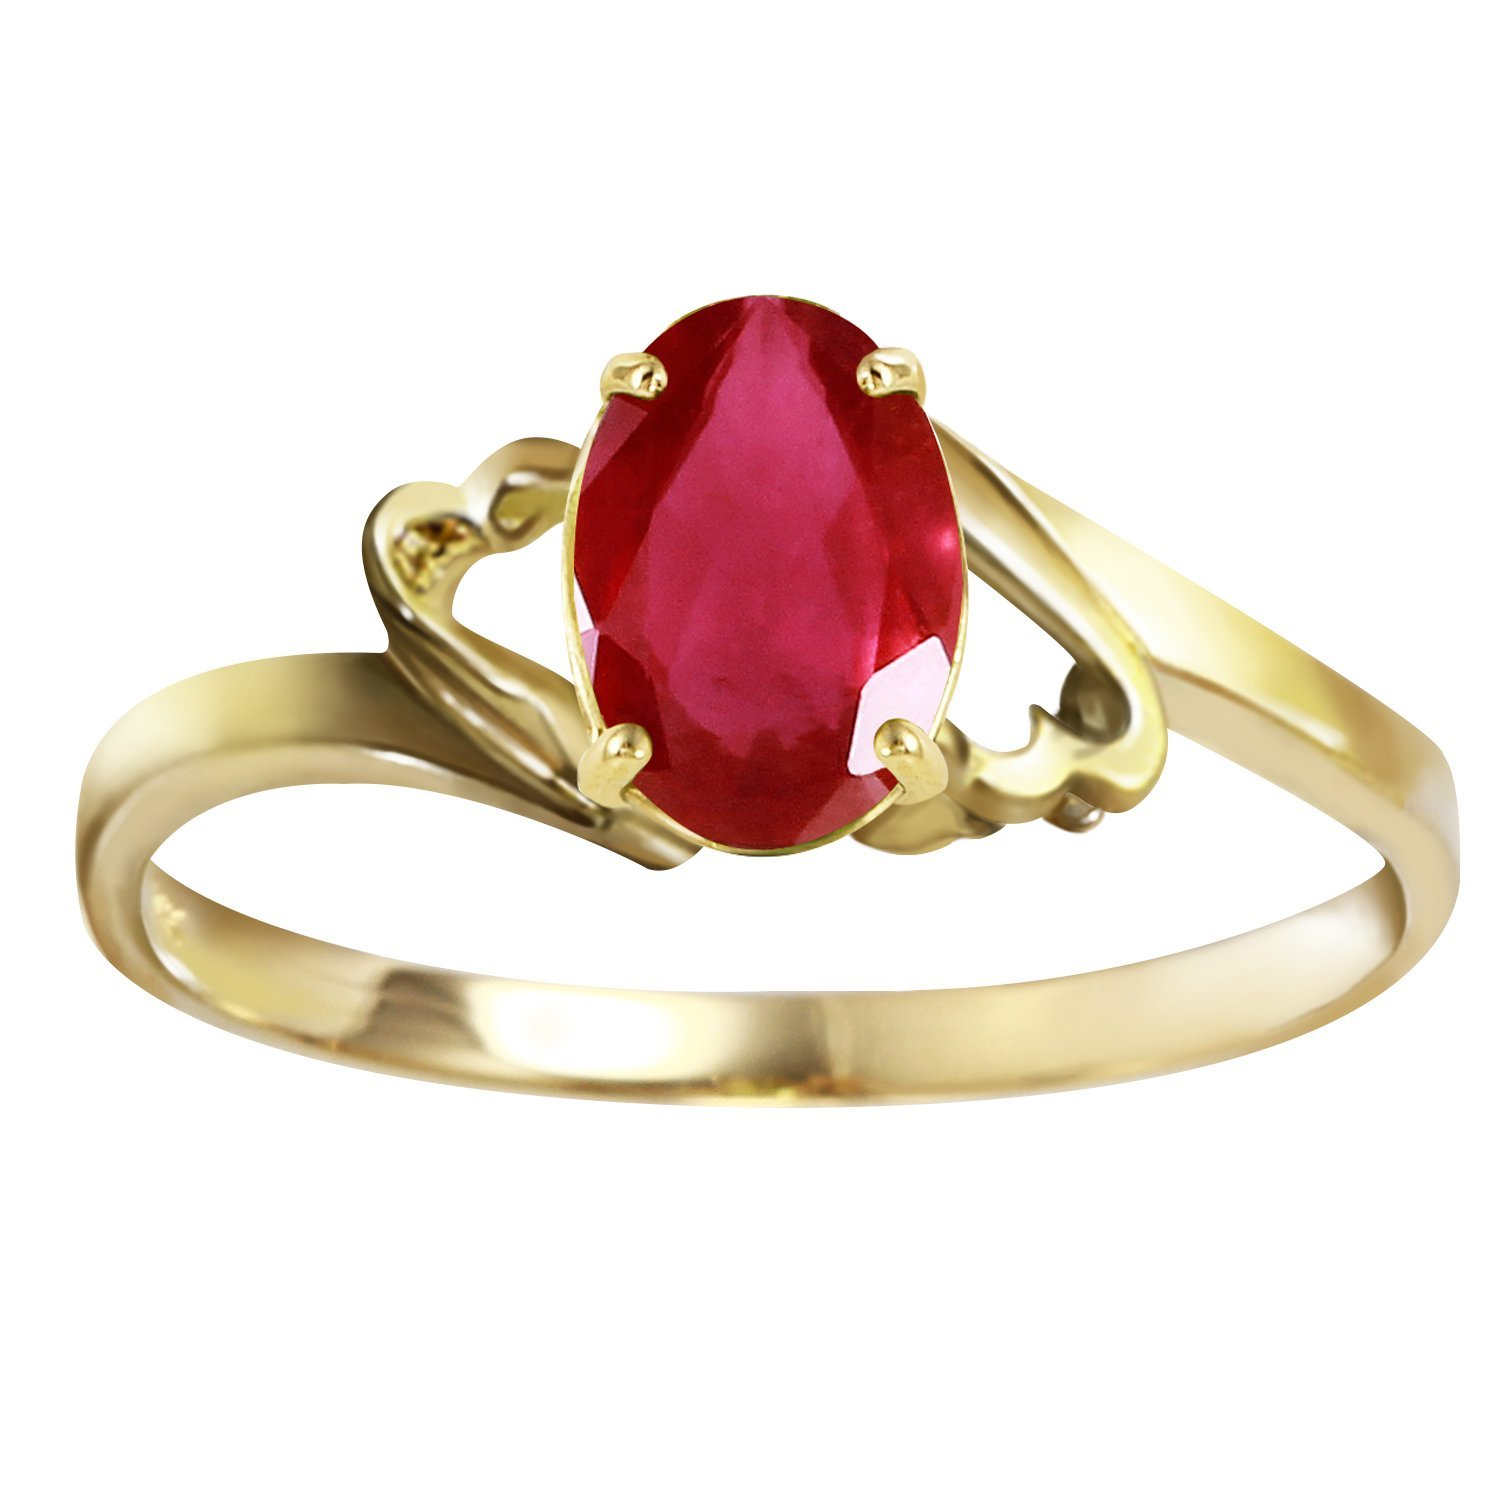 1.15 Carat 14k Solid Gold Ring with Natural Oval-Shaped Ruby - Size 9